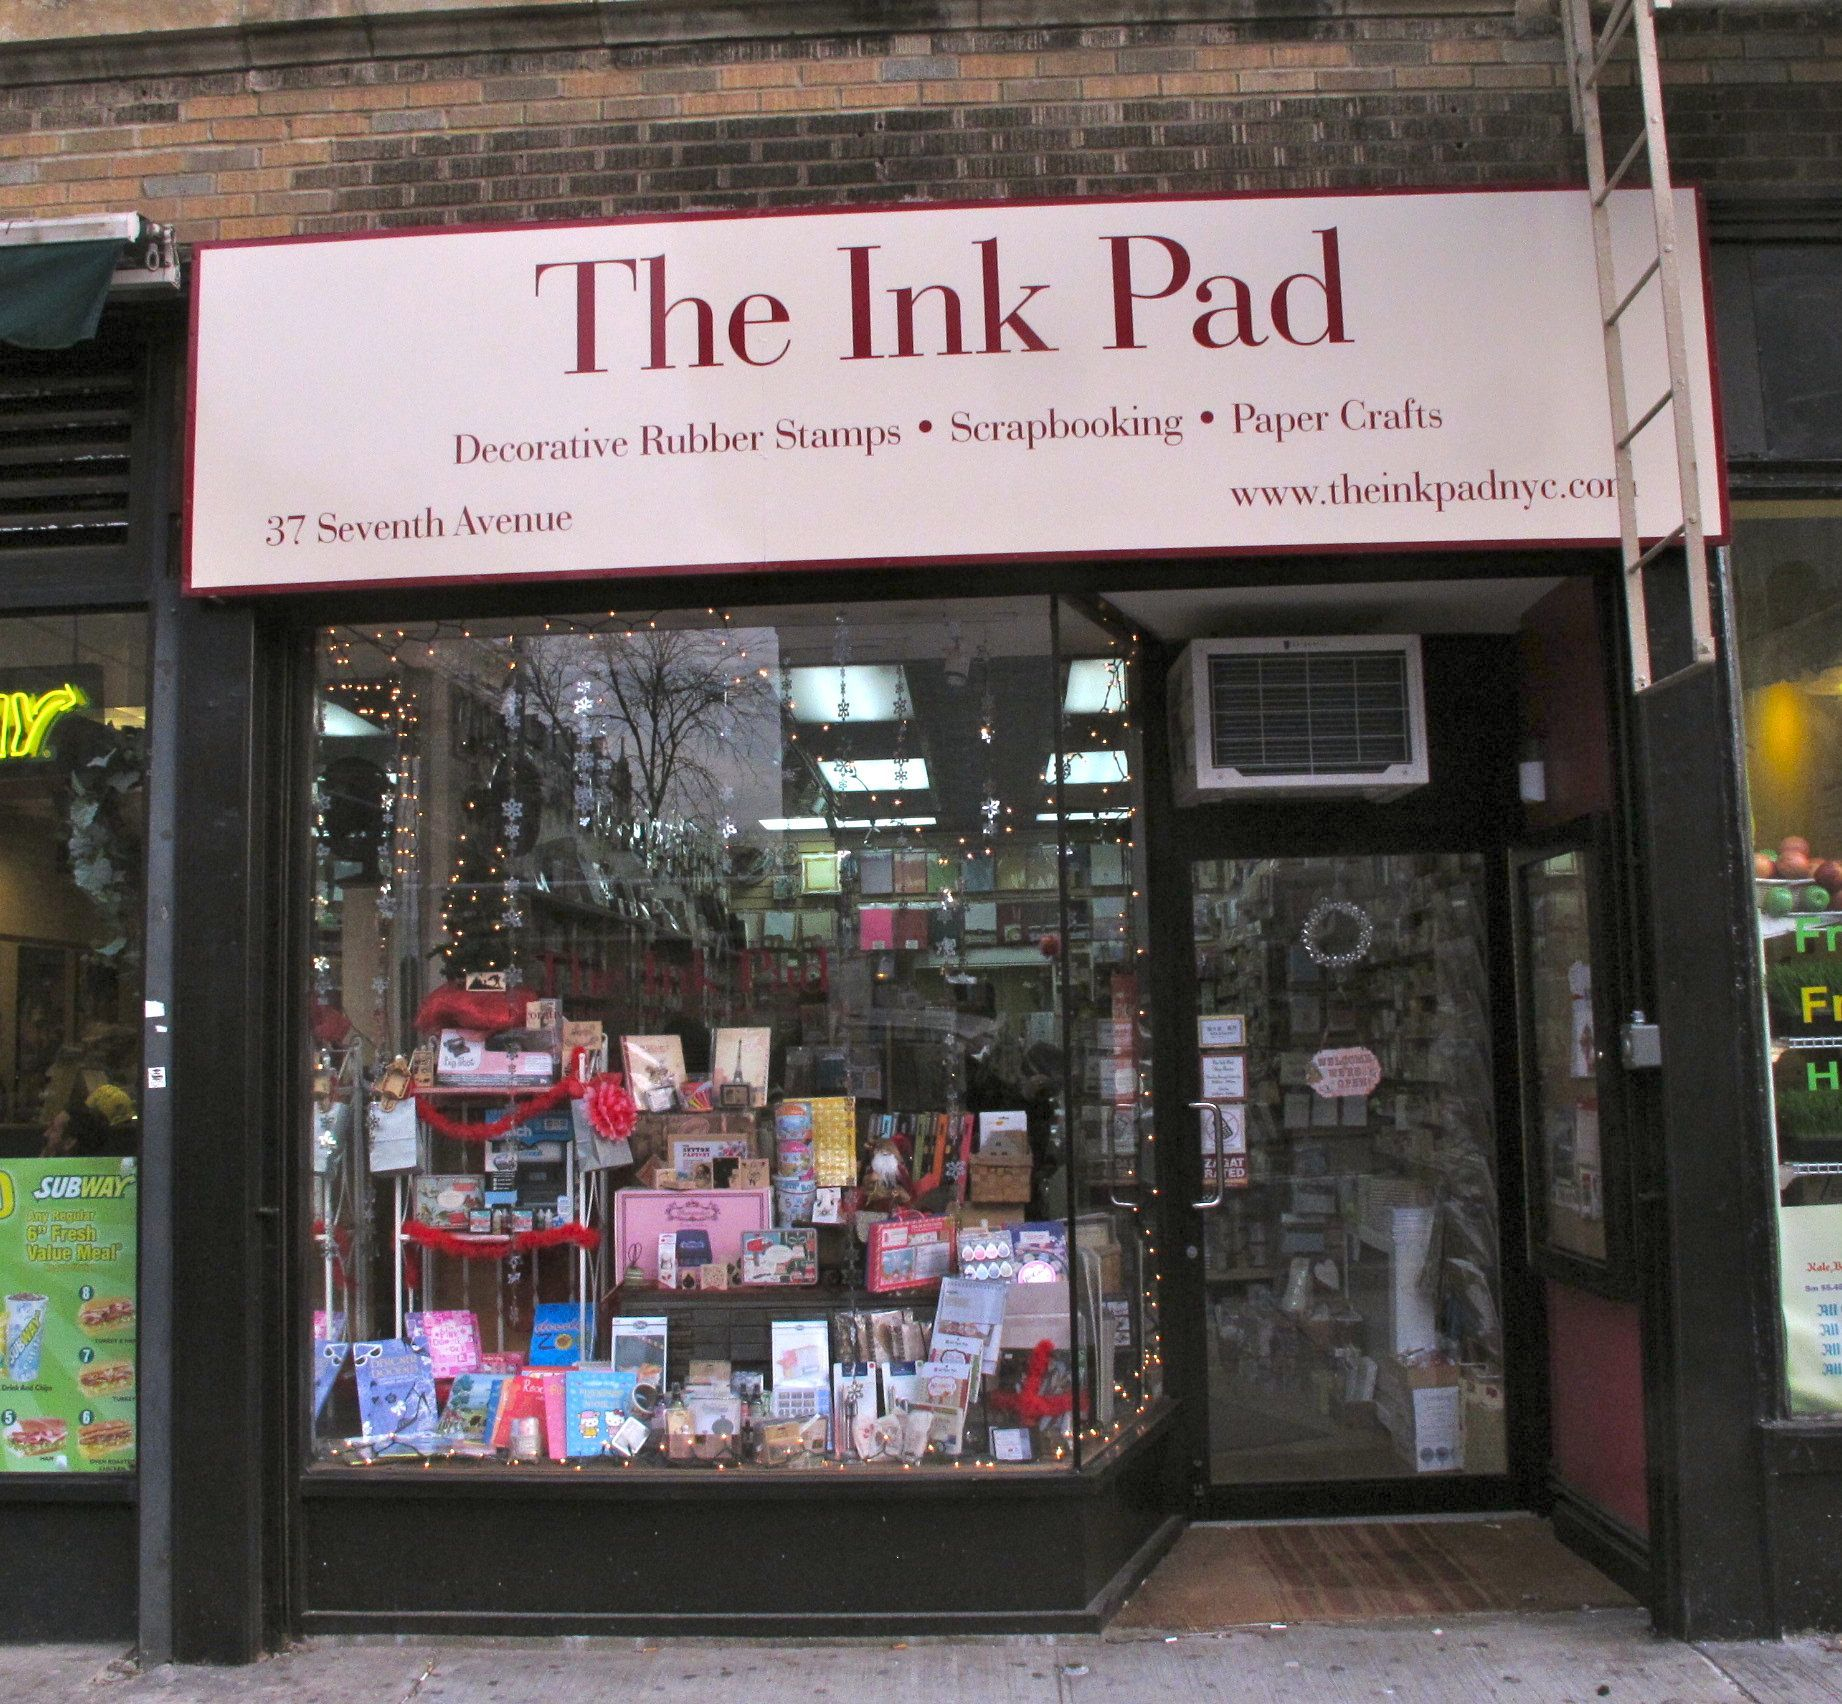 The Ink Pad 37 7th Avenue NYC